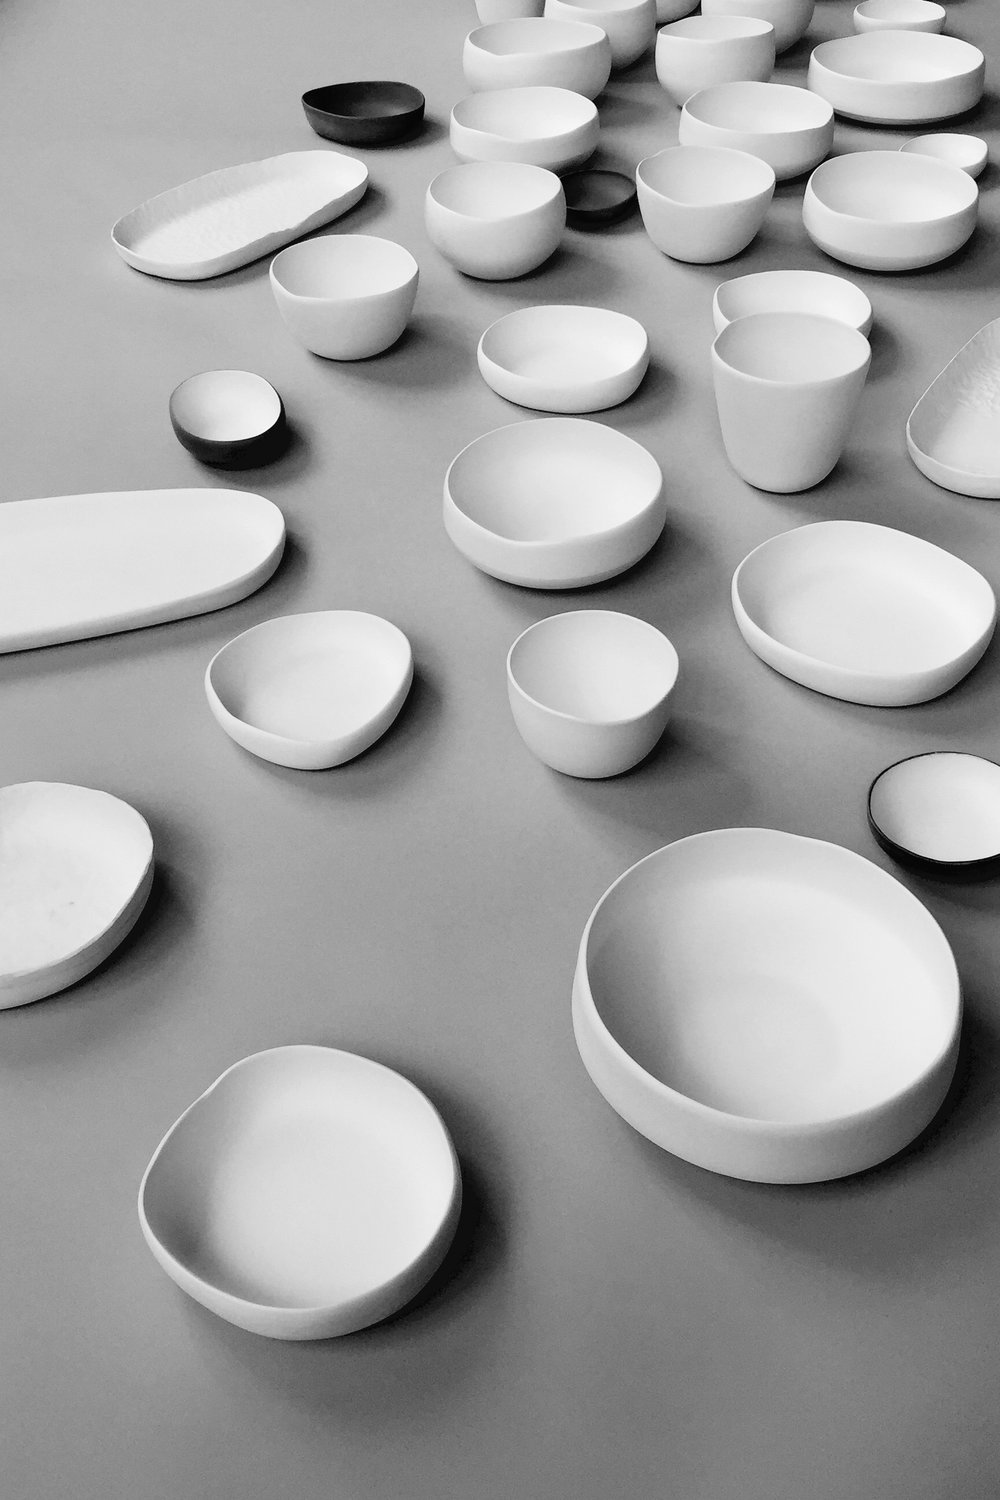 porcelain bowls in various forms and shapes by esselhaus